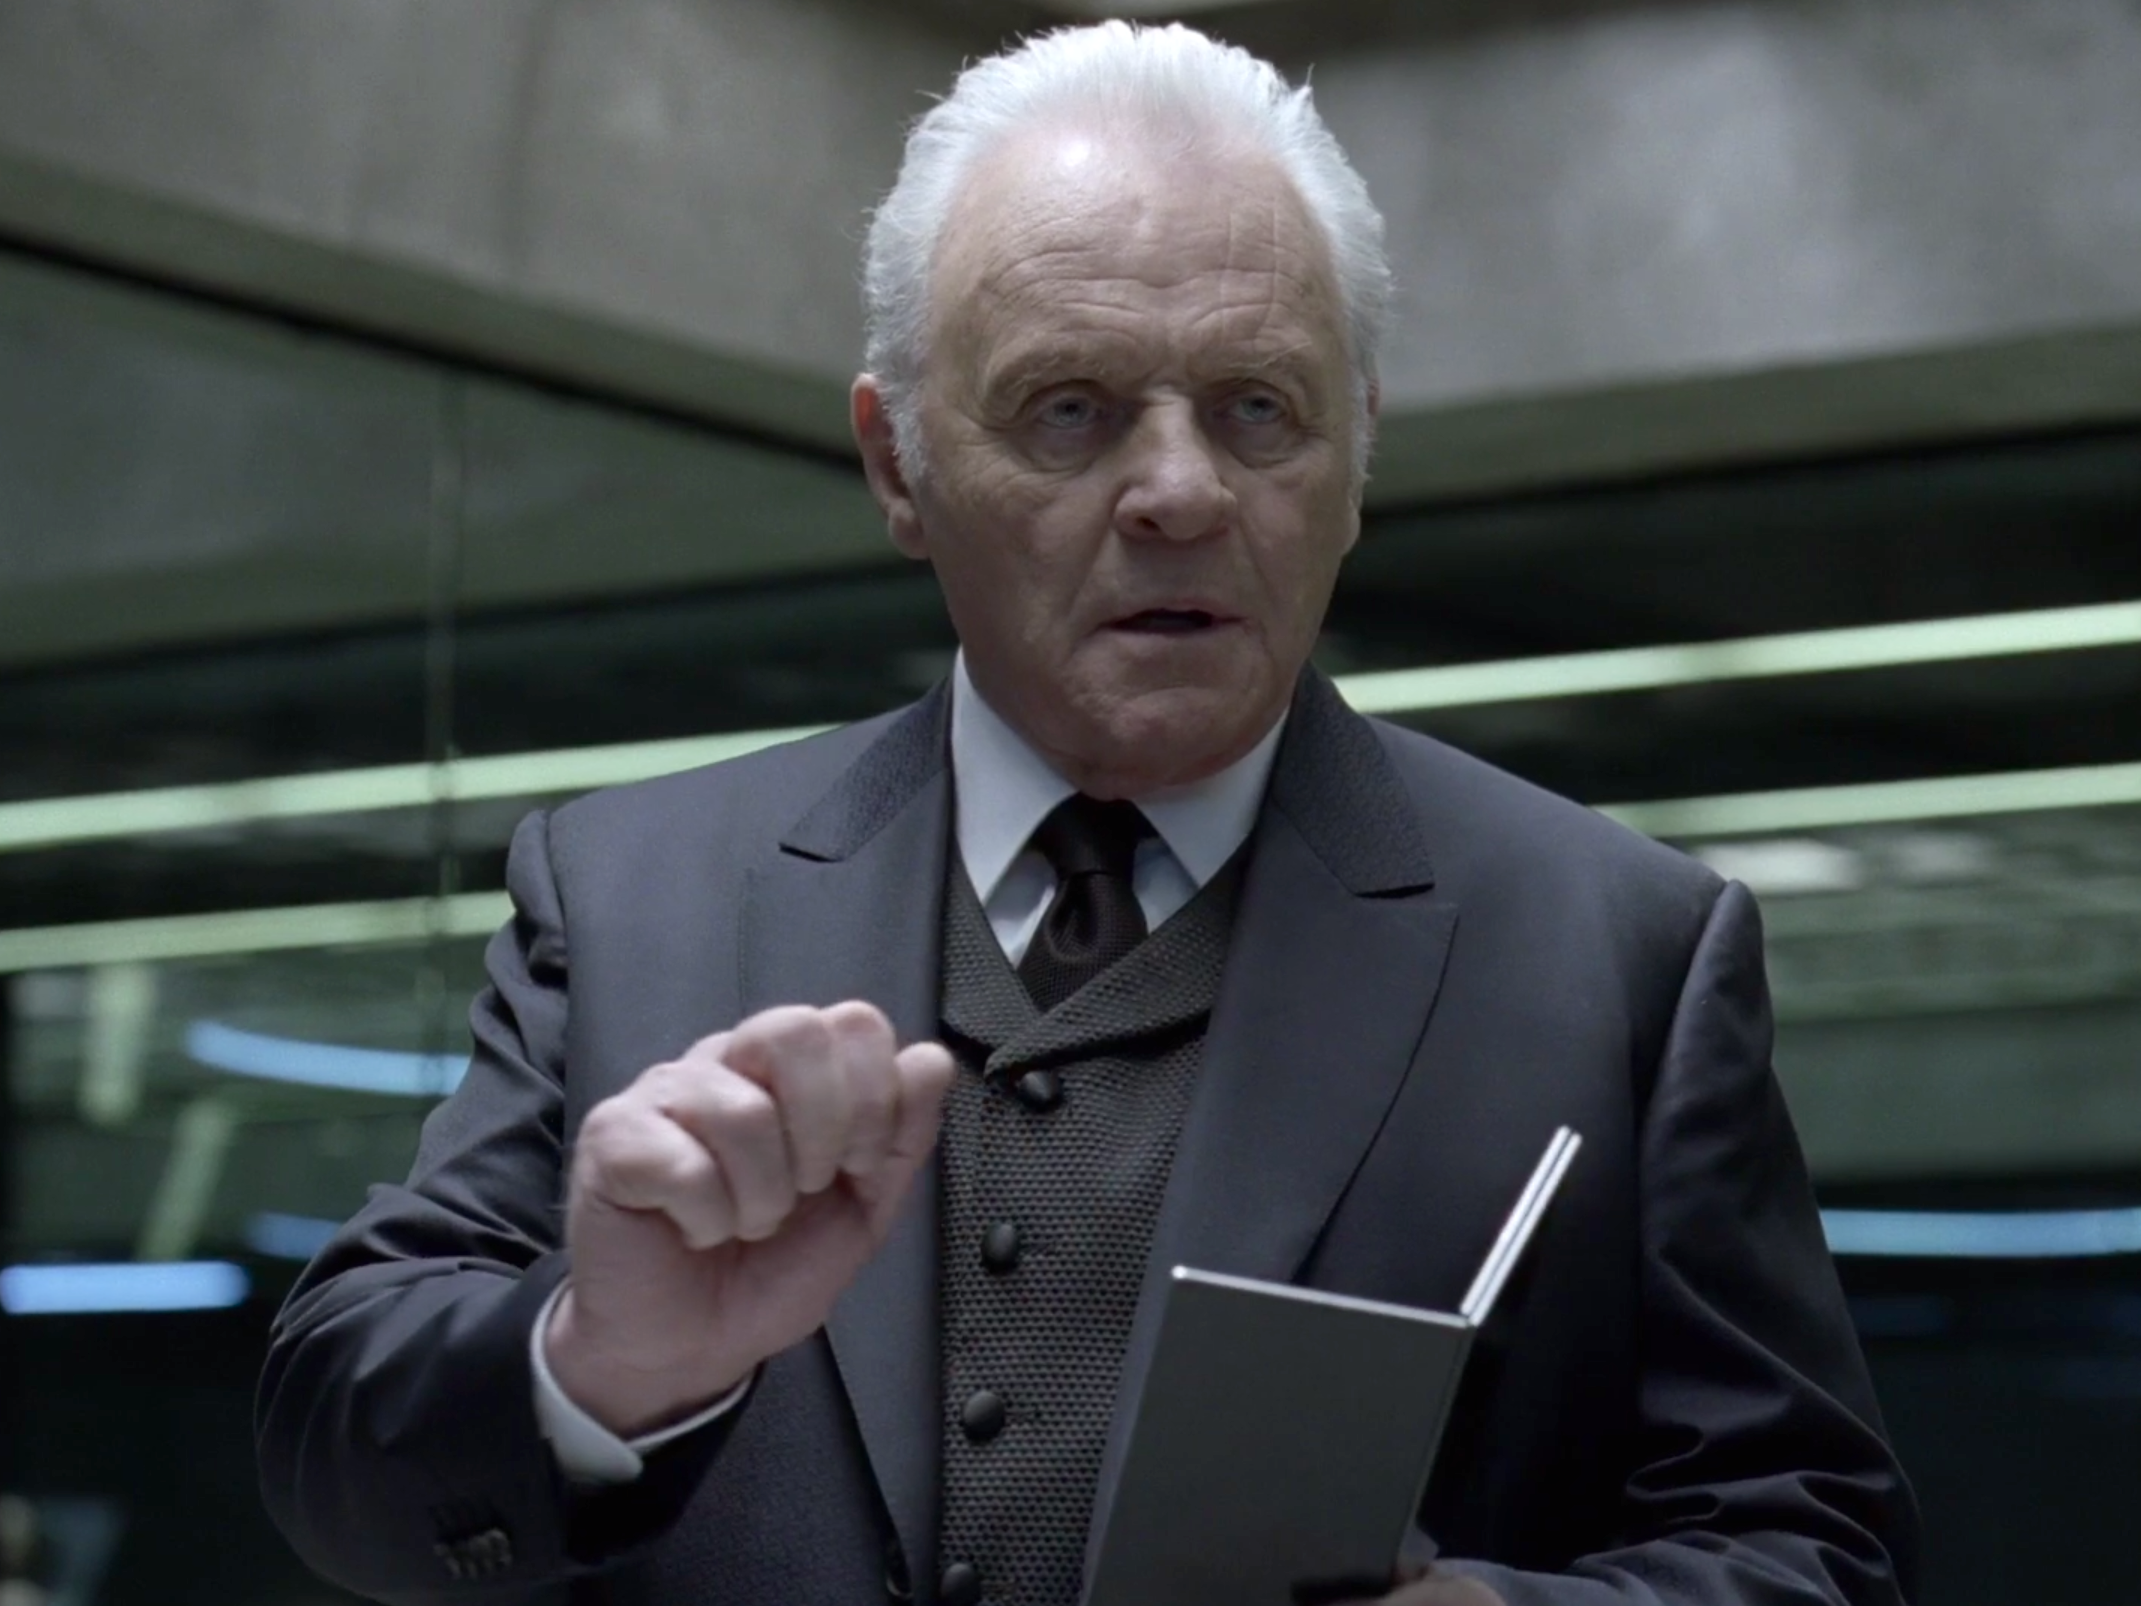 11 Details You Probably Missed In The Latest Westworld Episode